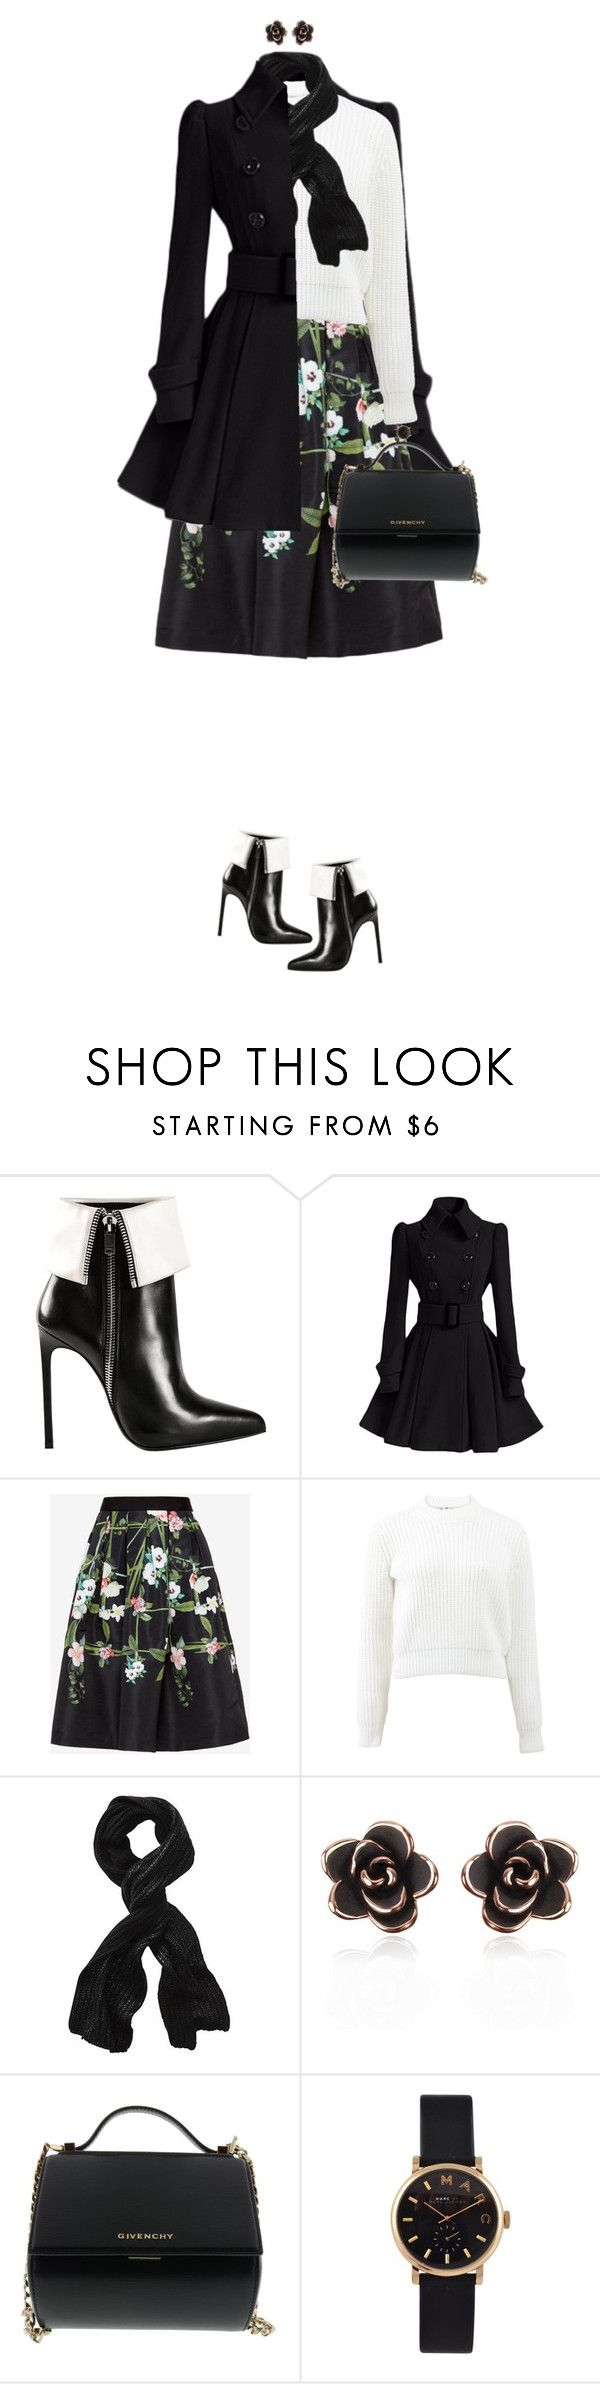 """Black And White Ankle Boots"" by ittie-kittie on Polyvore featuring Yves Saint Laurent, Ted Baker, T By Alexander Wang, Vincent Pradier, Givenchy, Marc by Marc Jacobs, women's clothing, women, female and woman"